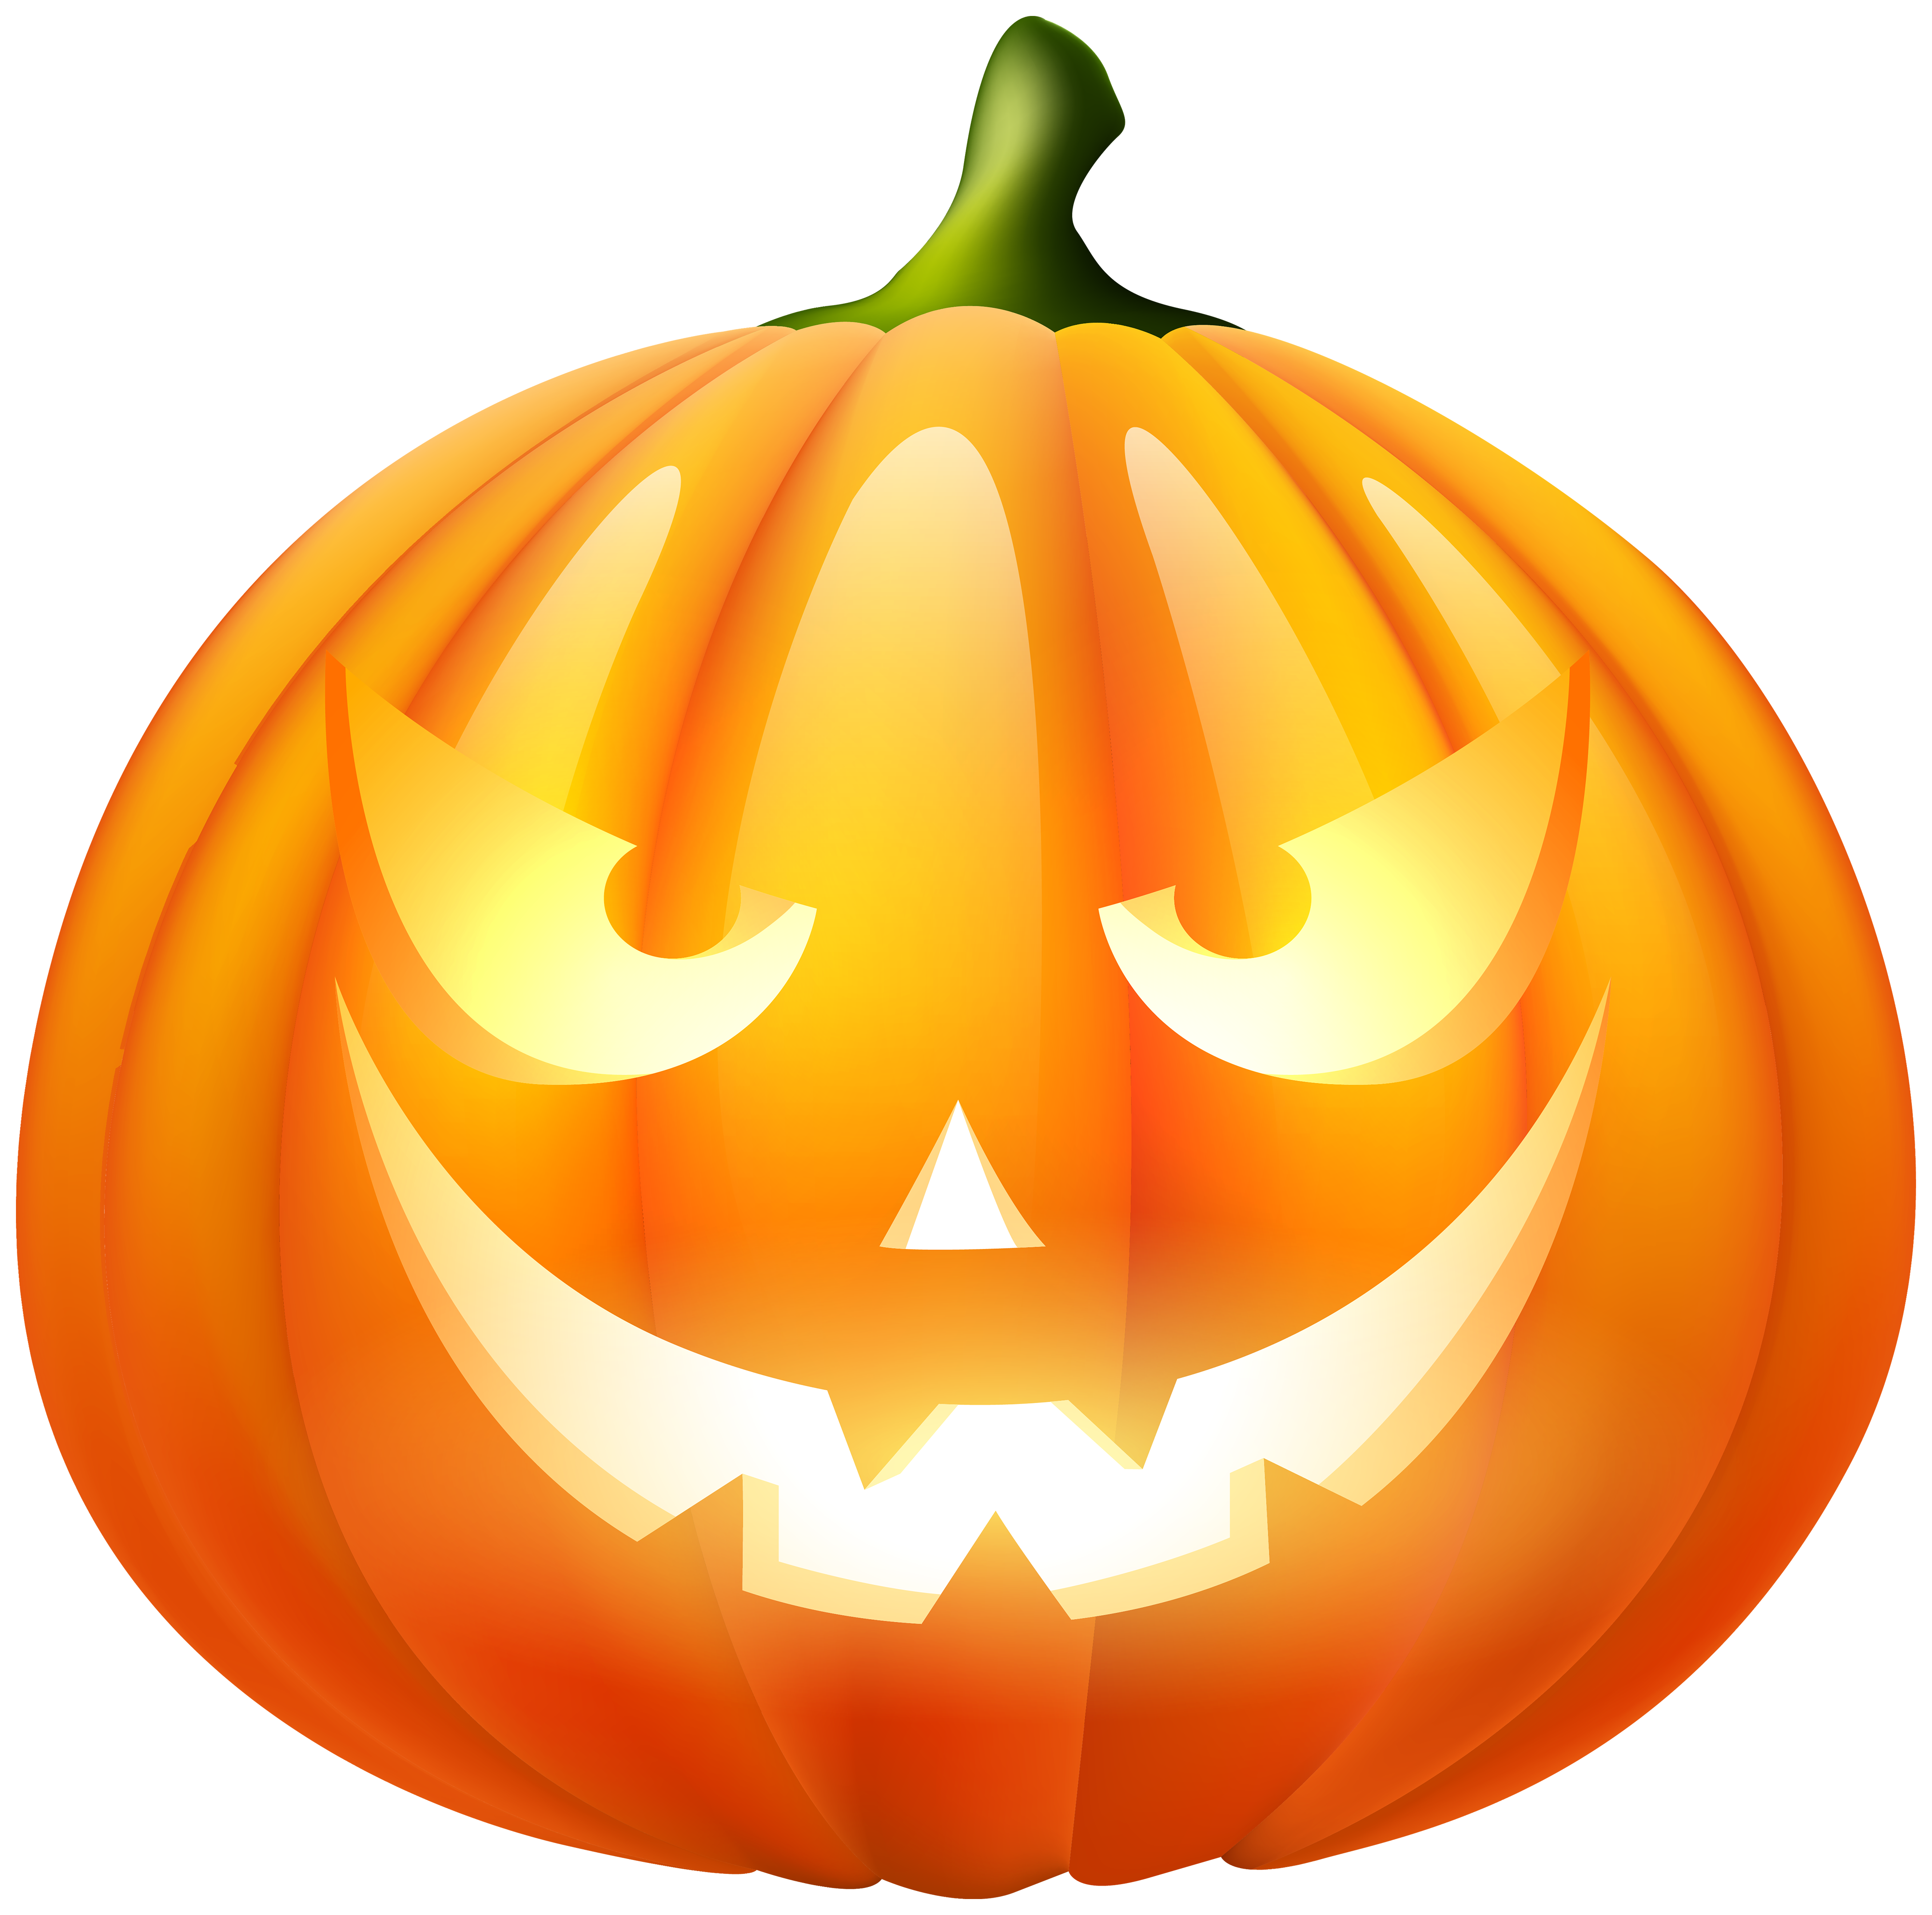 Halloween pumpkin png. Clipart image gallery yopriceville